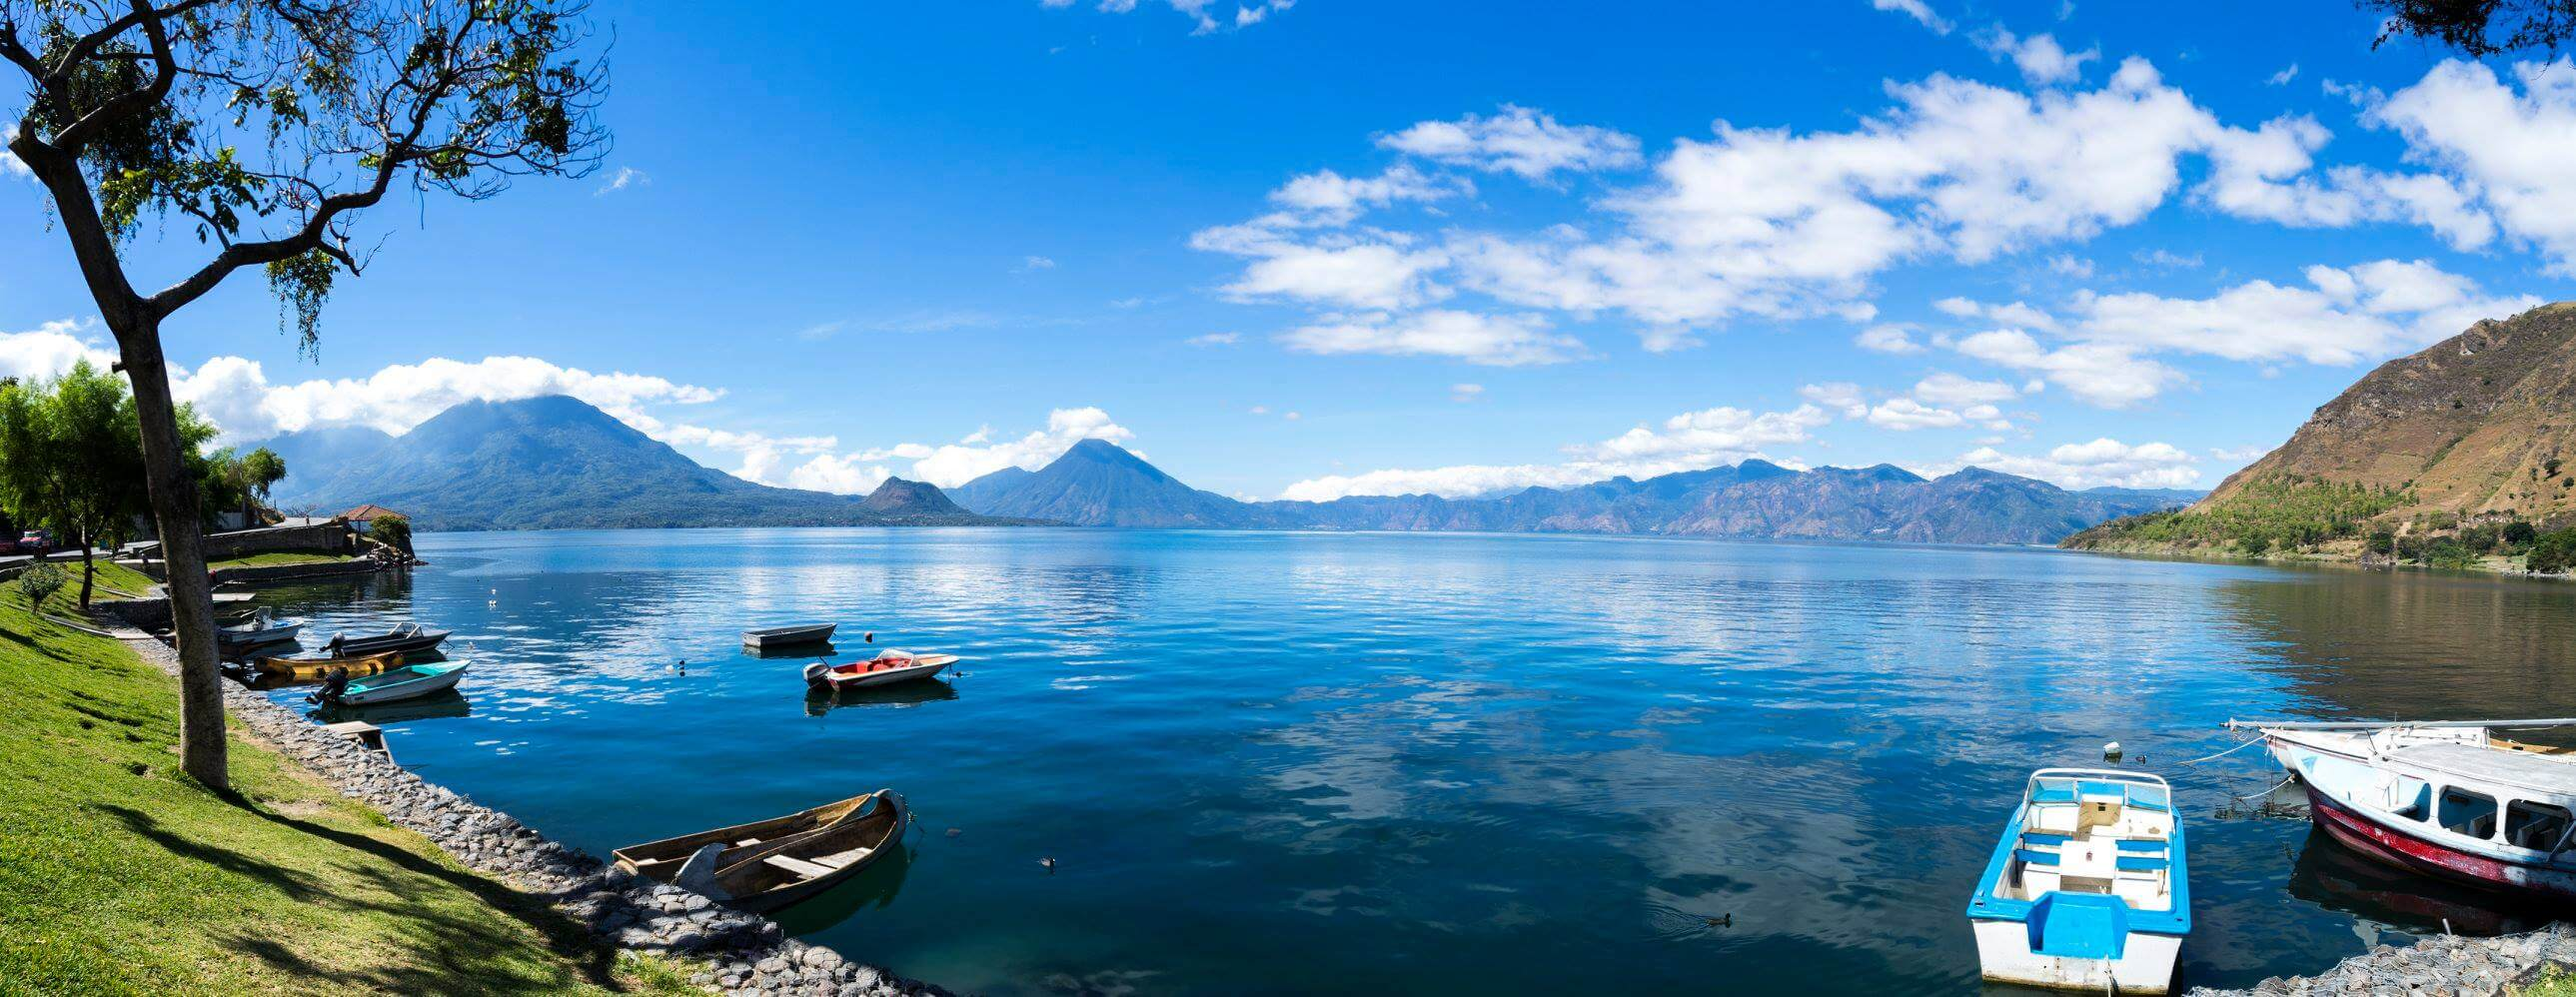 blog-5-greatest-life-lessons-lake-atitlan